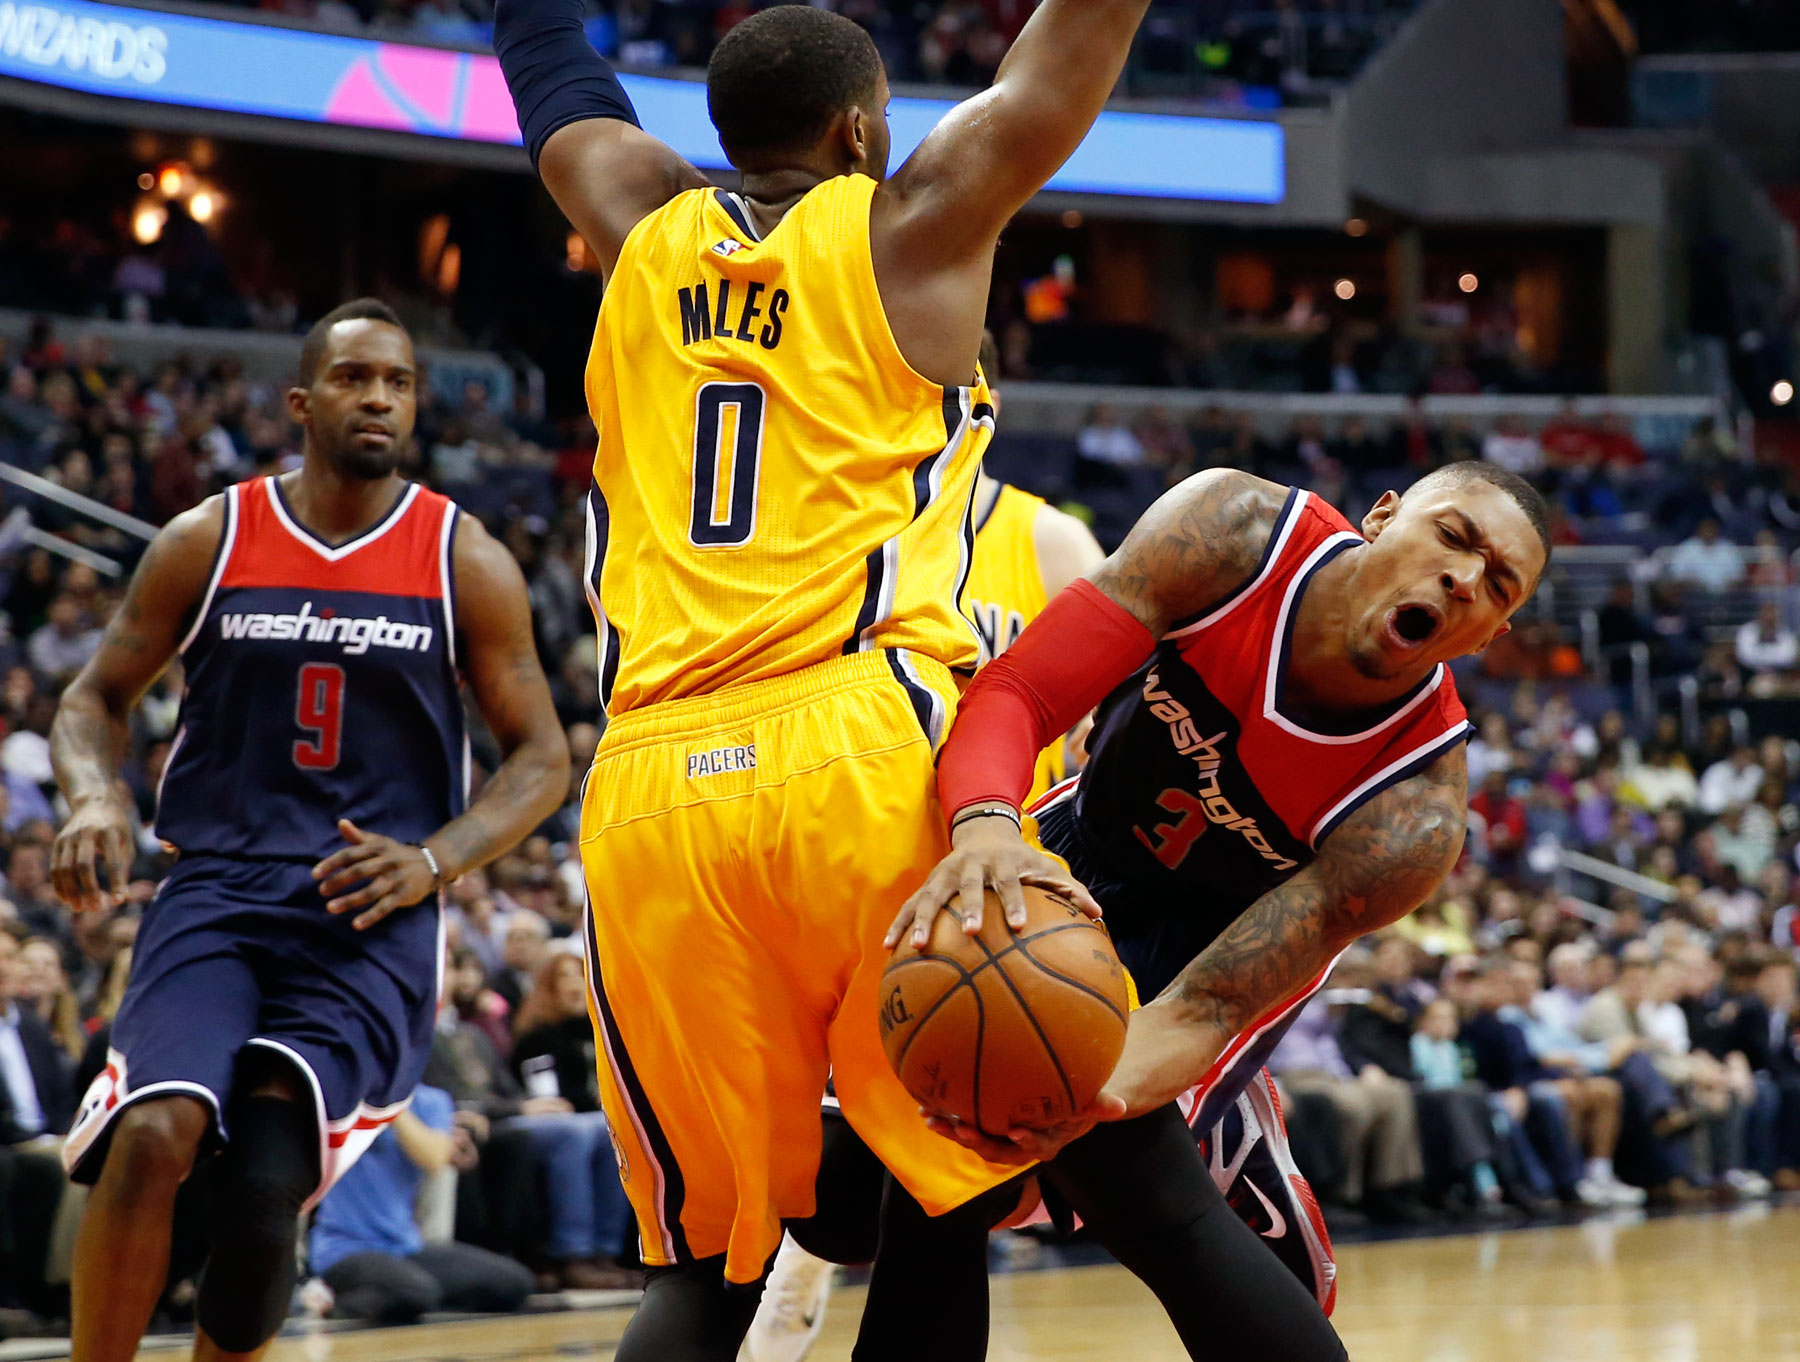 George Hill's layup lifts Pacers over Wizards 103-101